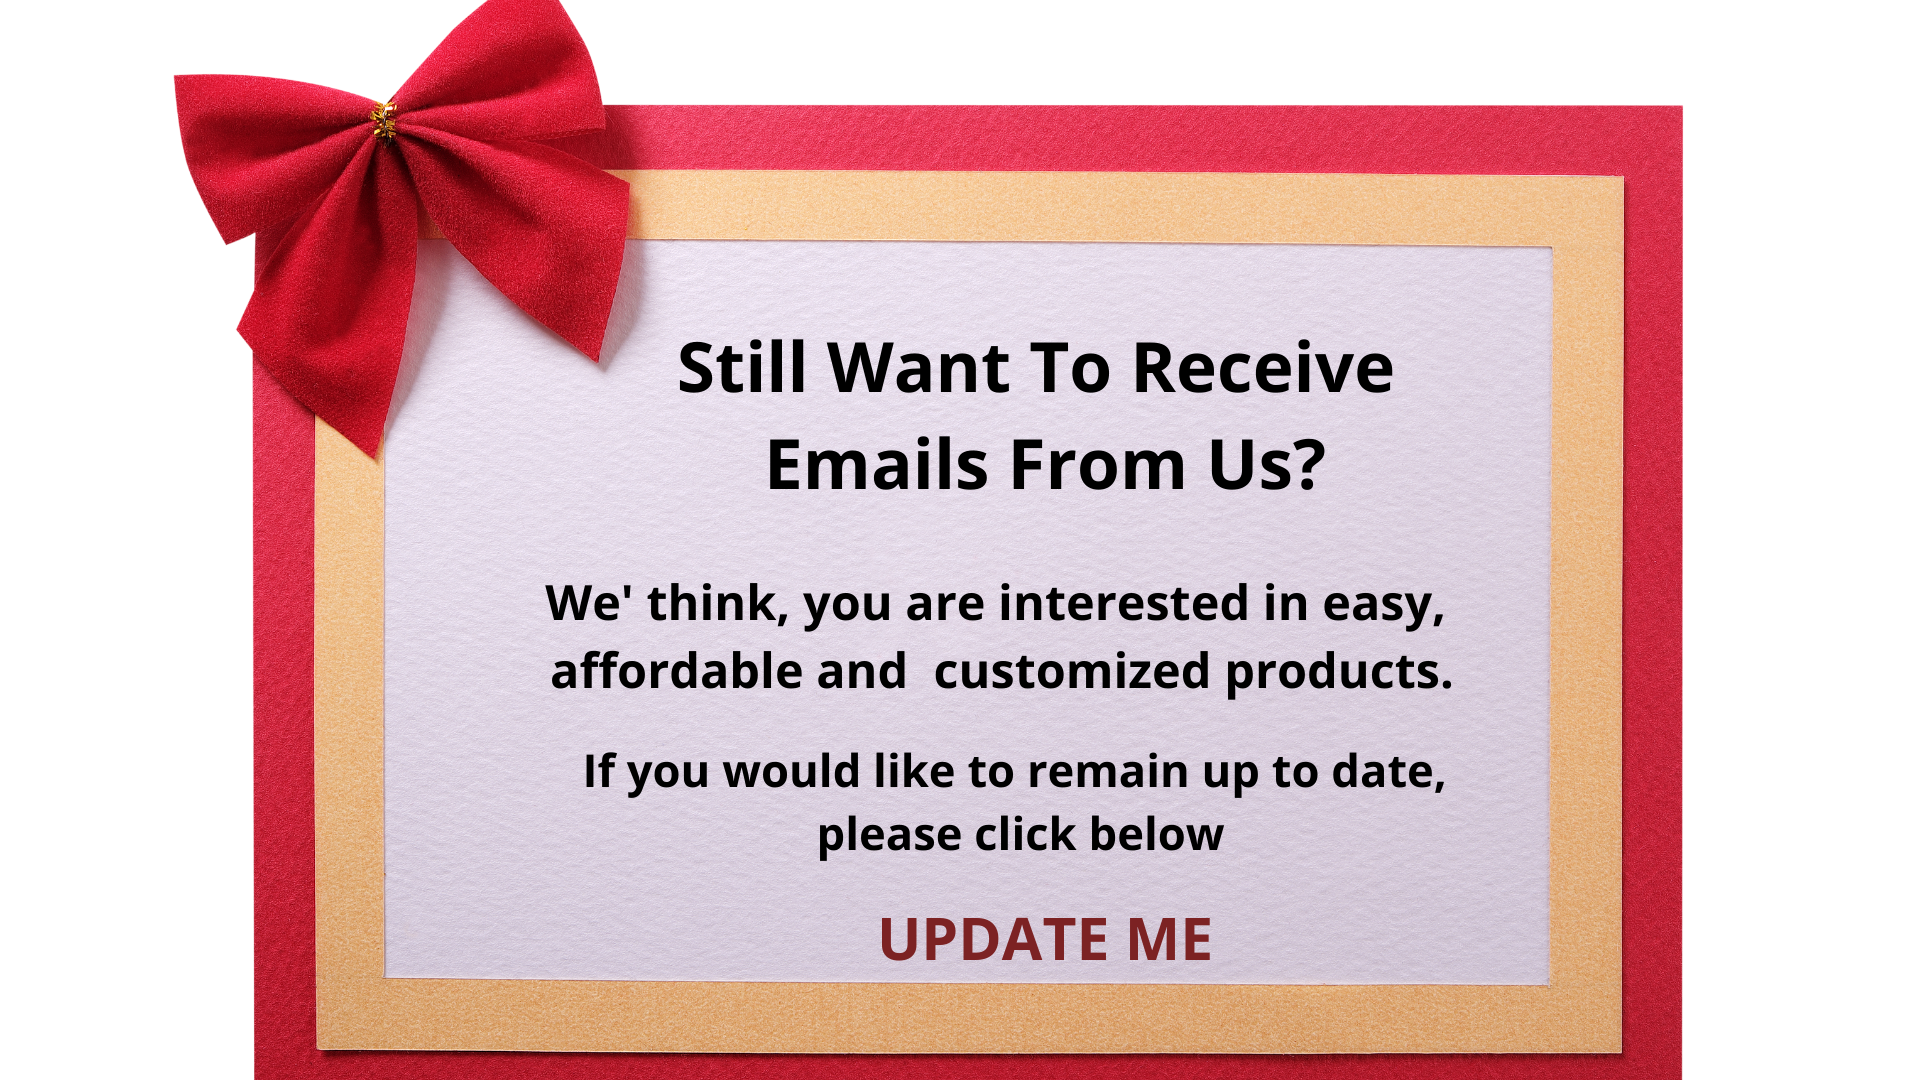 Still Want To Receive Emails From Us